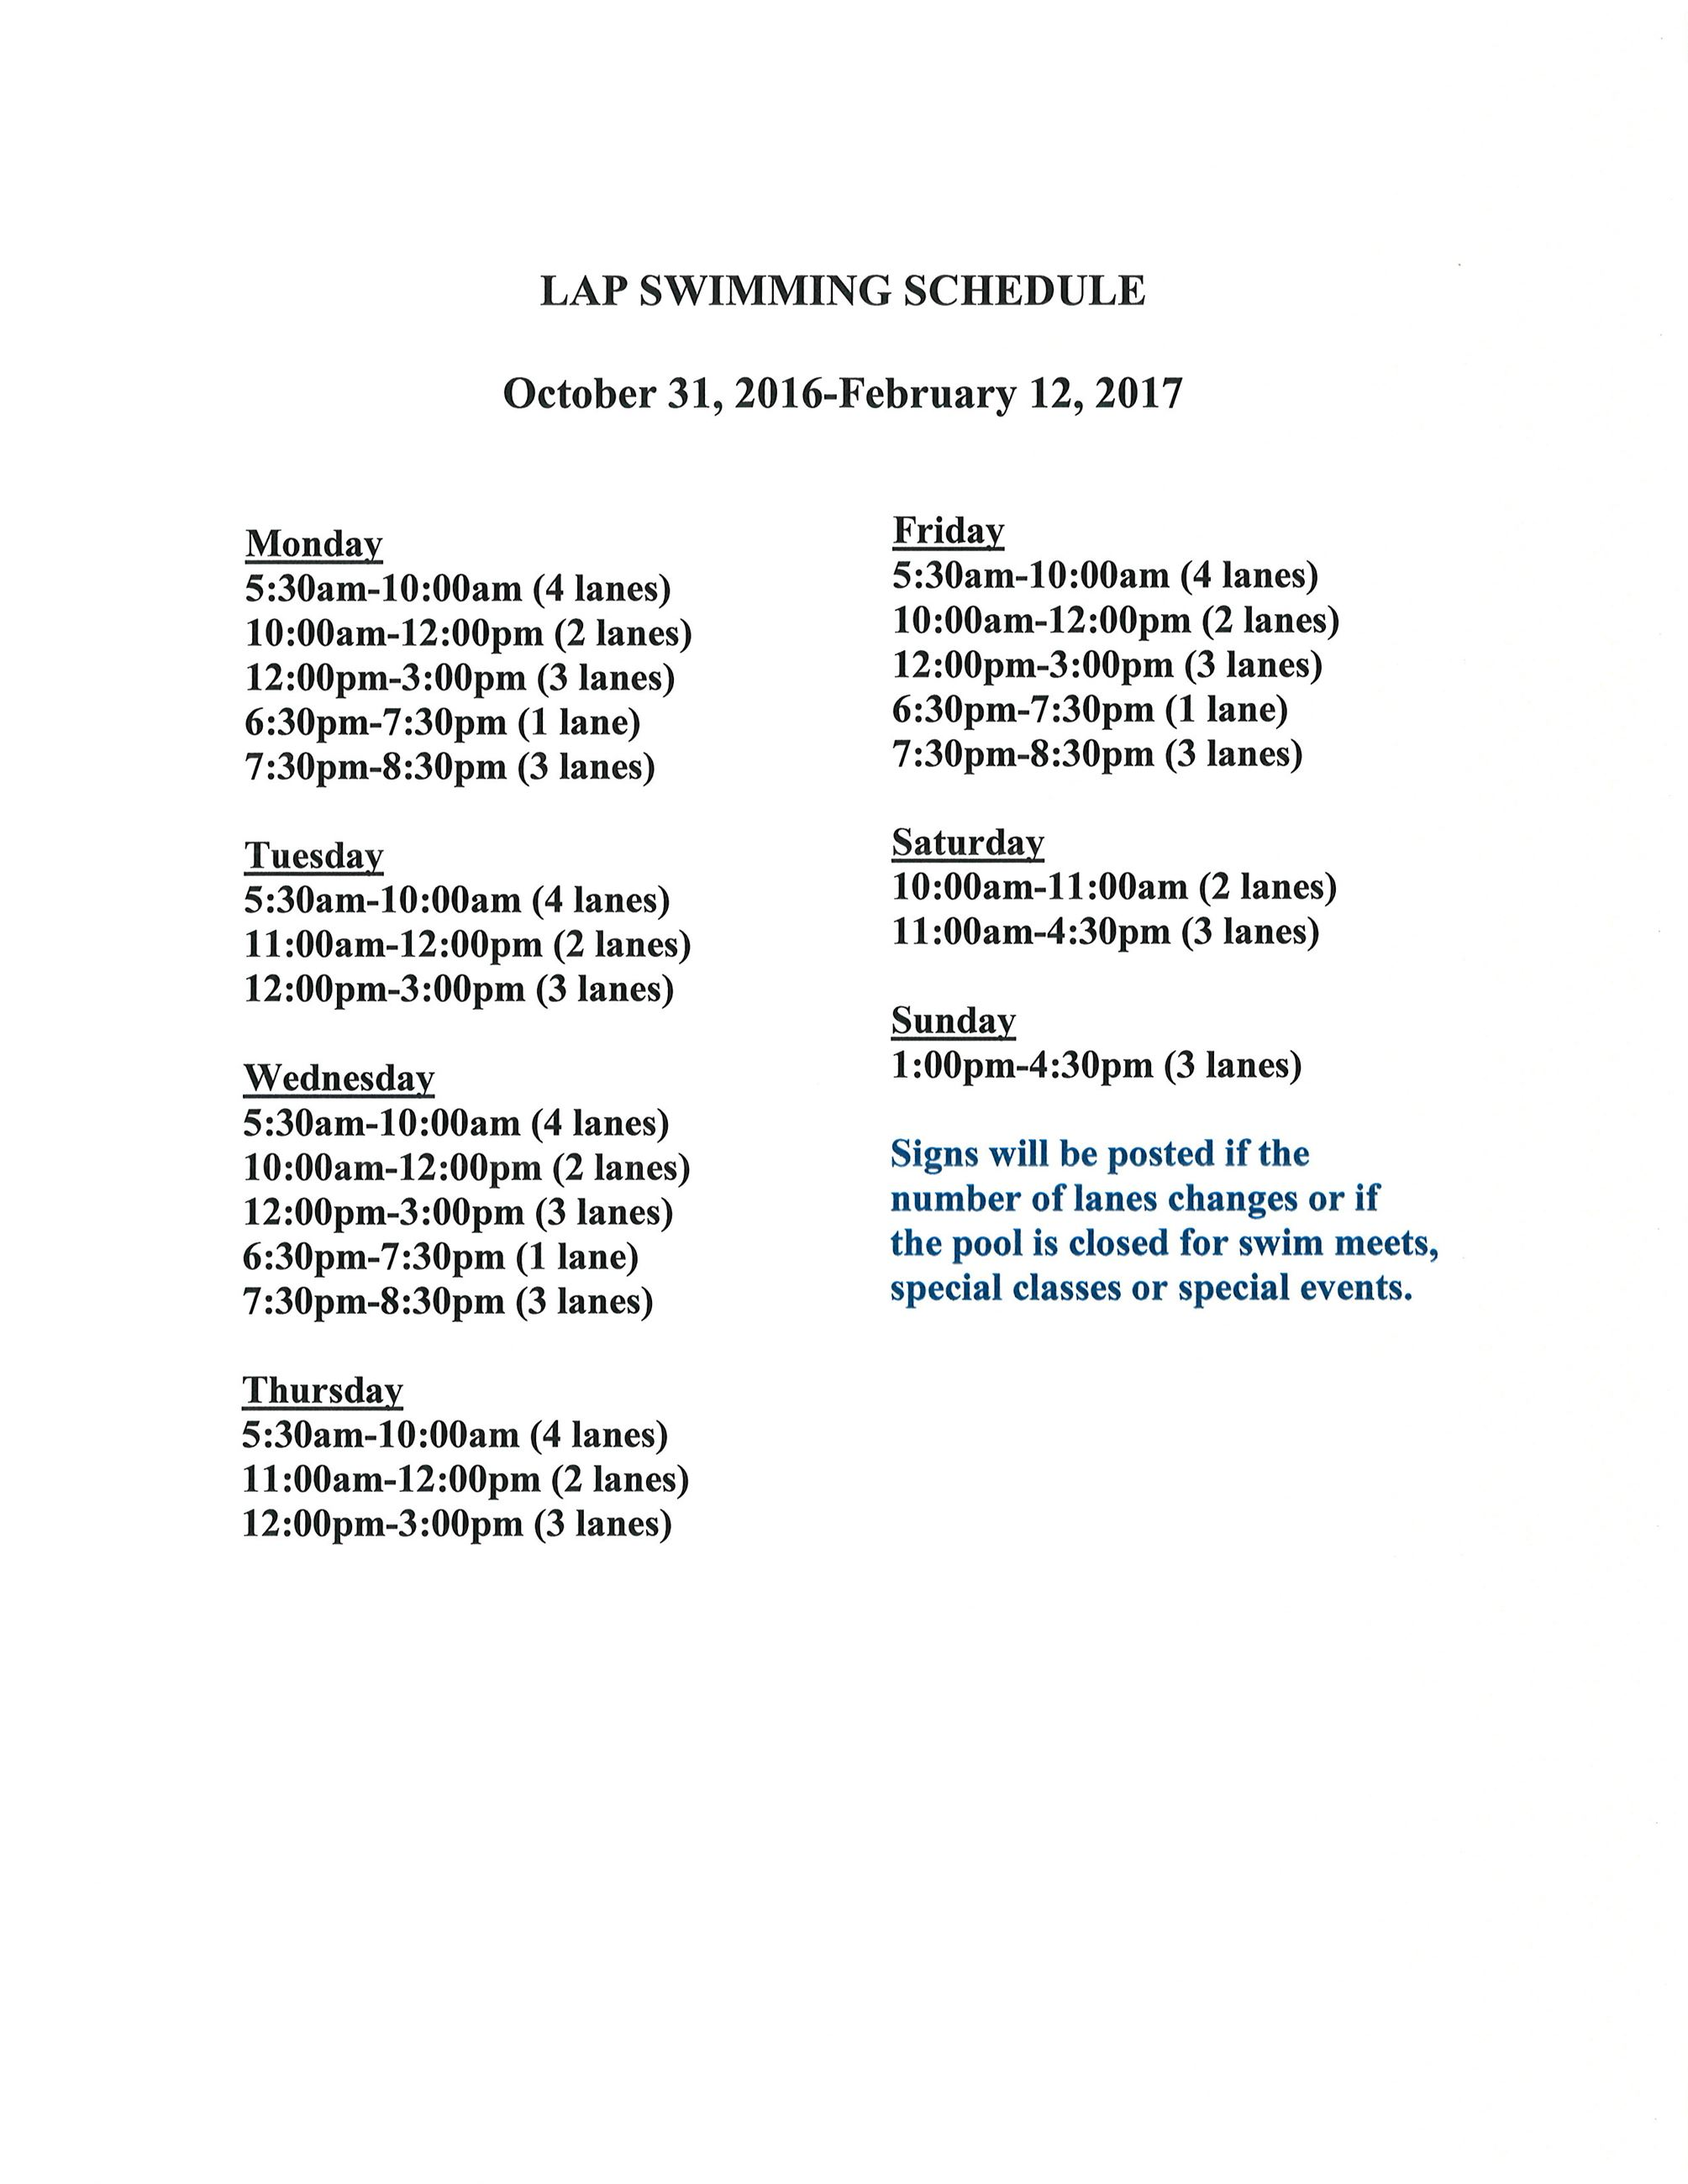 Winter 2016 Lap Swim Schedule